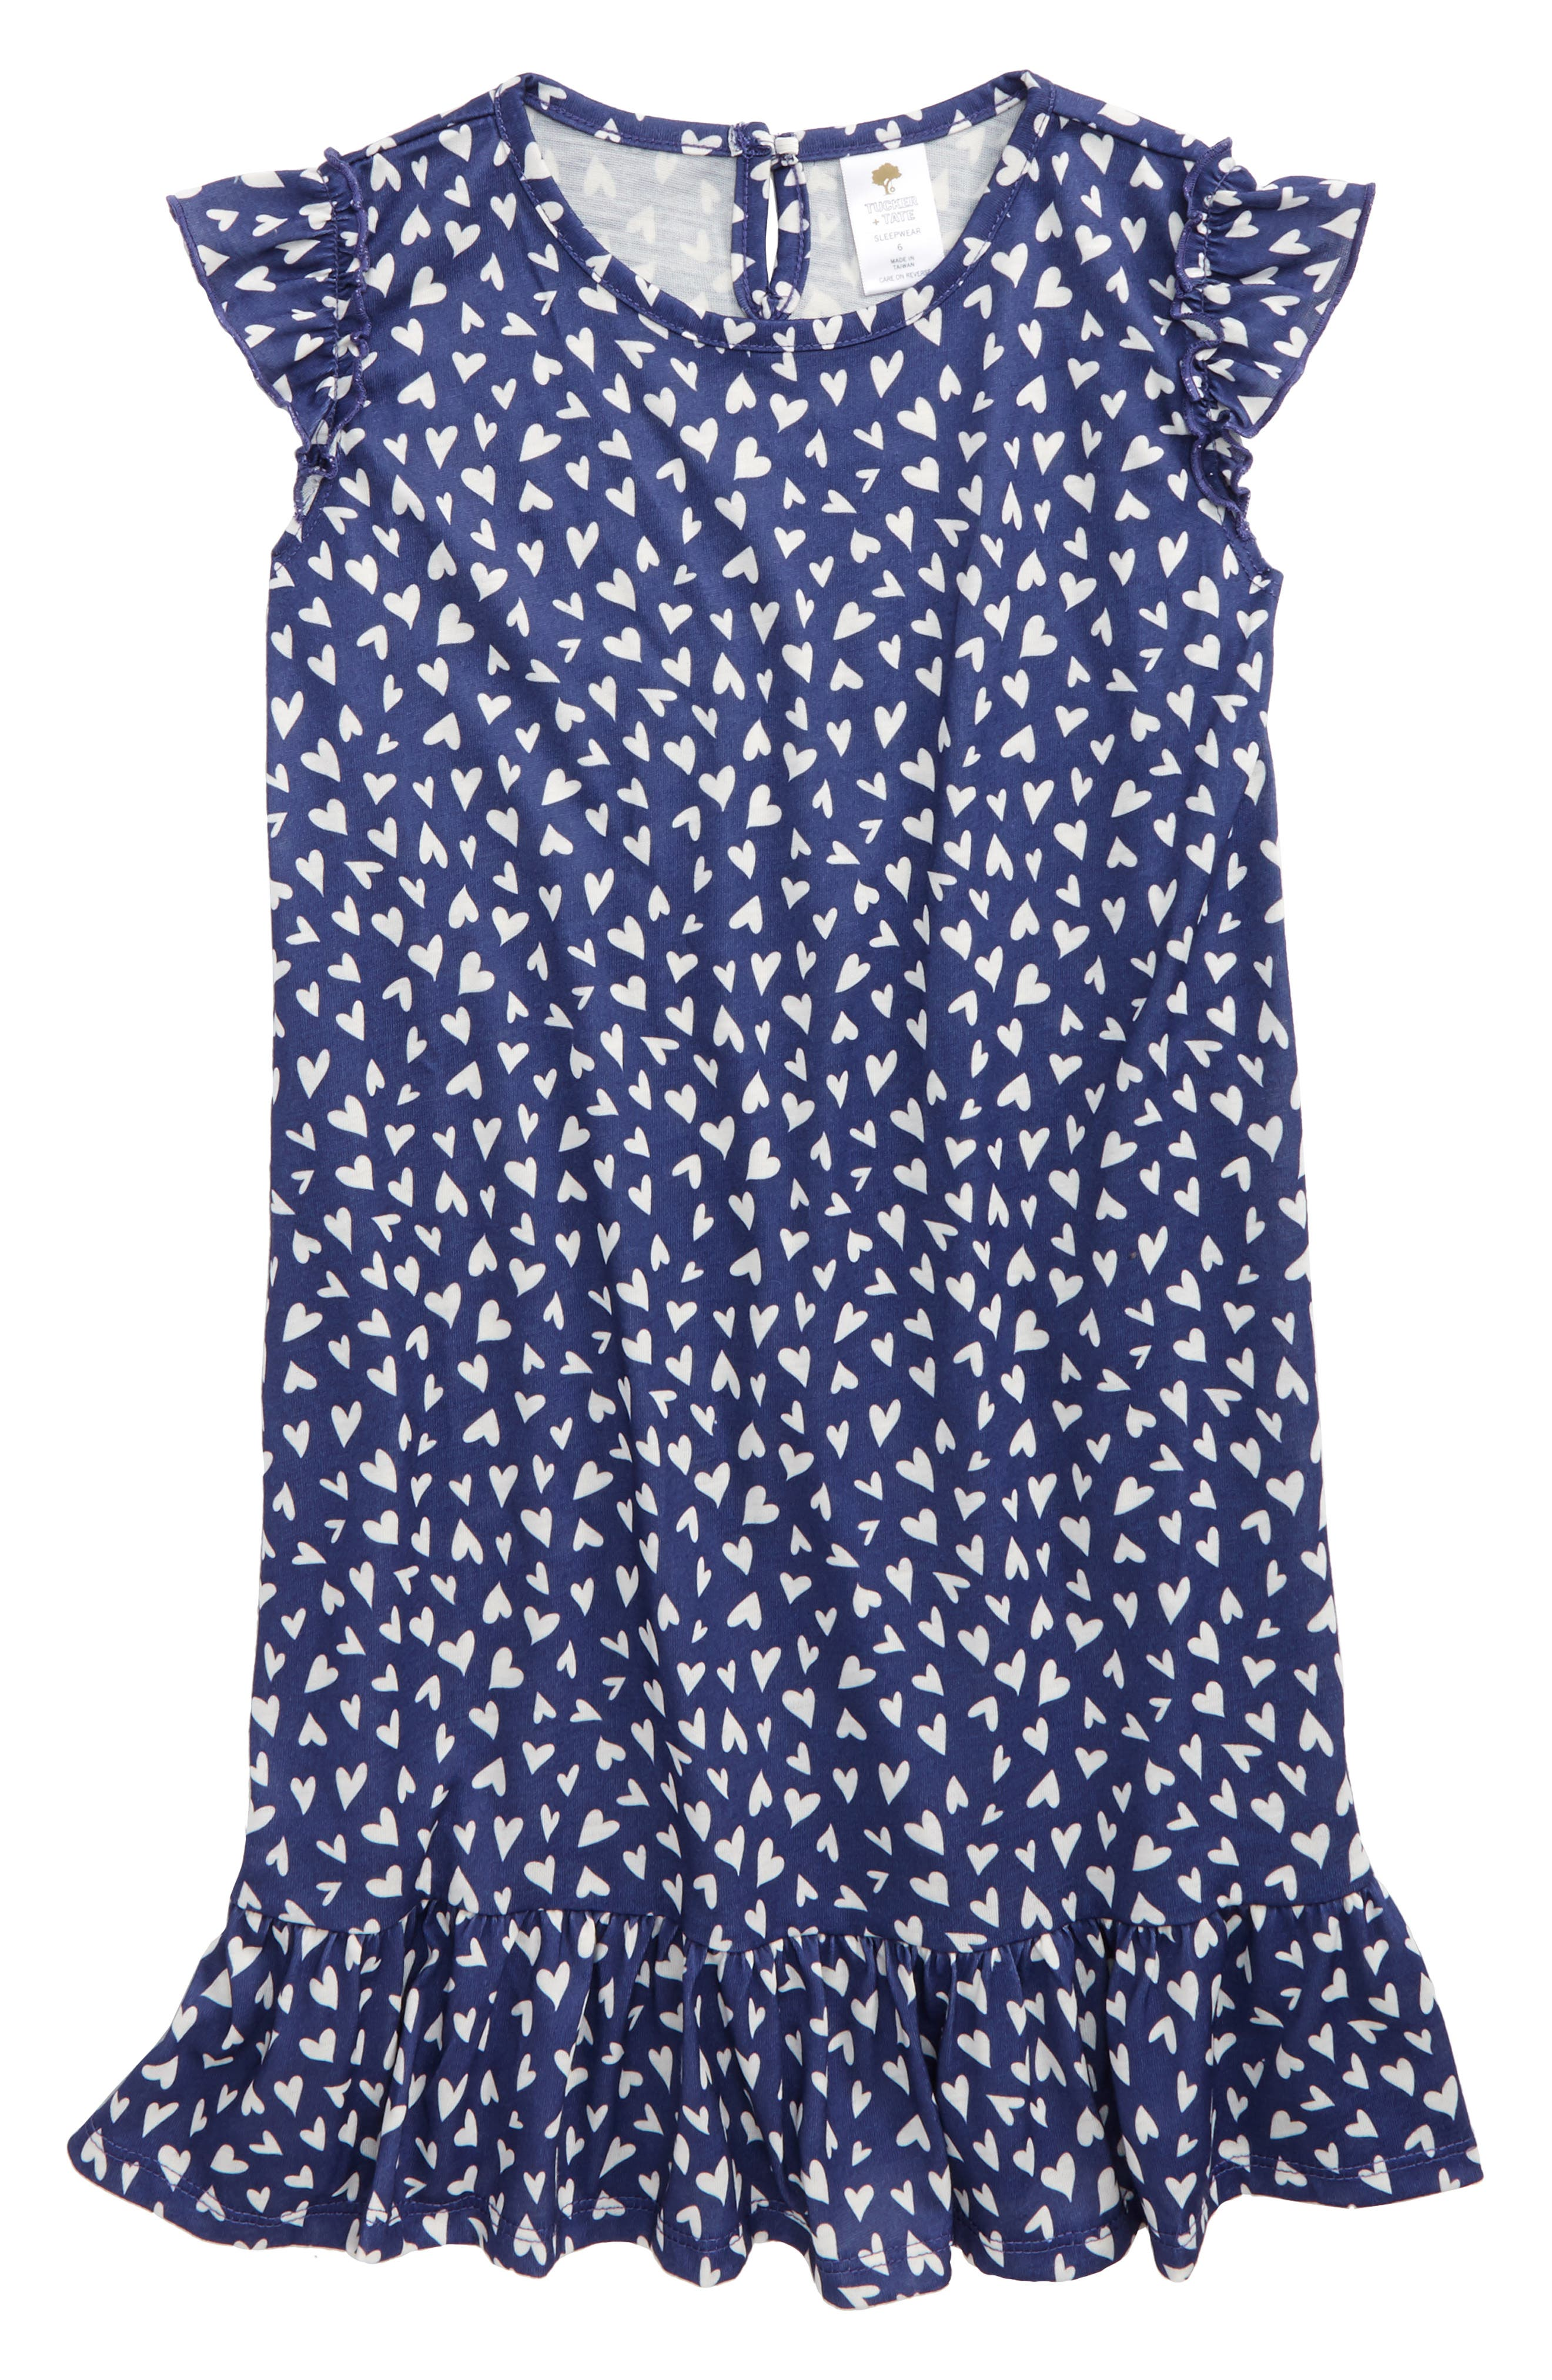 Ruffle Nightgown,                             Main thumbnail 1, color,                             Navy Skipper Tossed Hearts